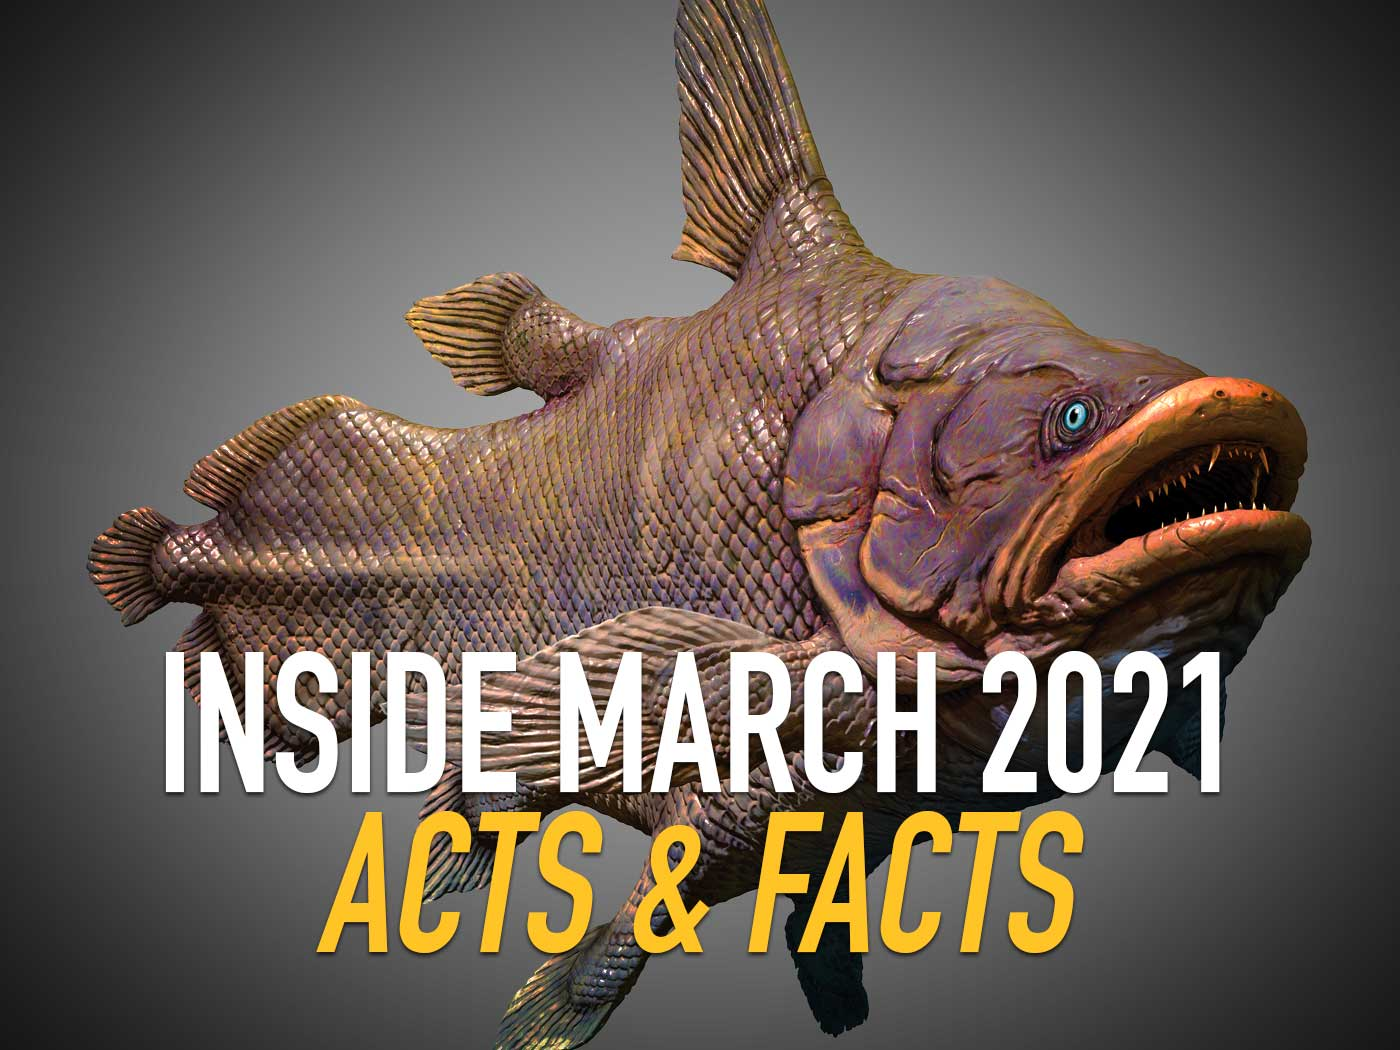 Inside March 2021 Acts & Facts